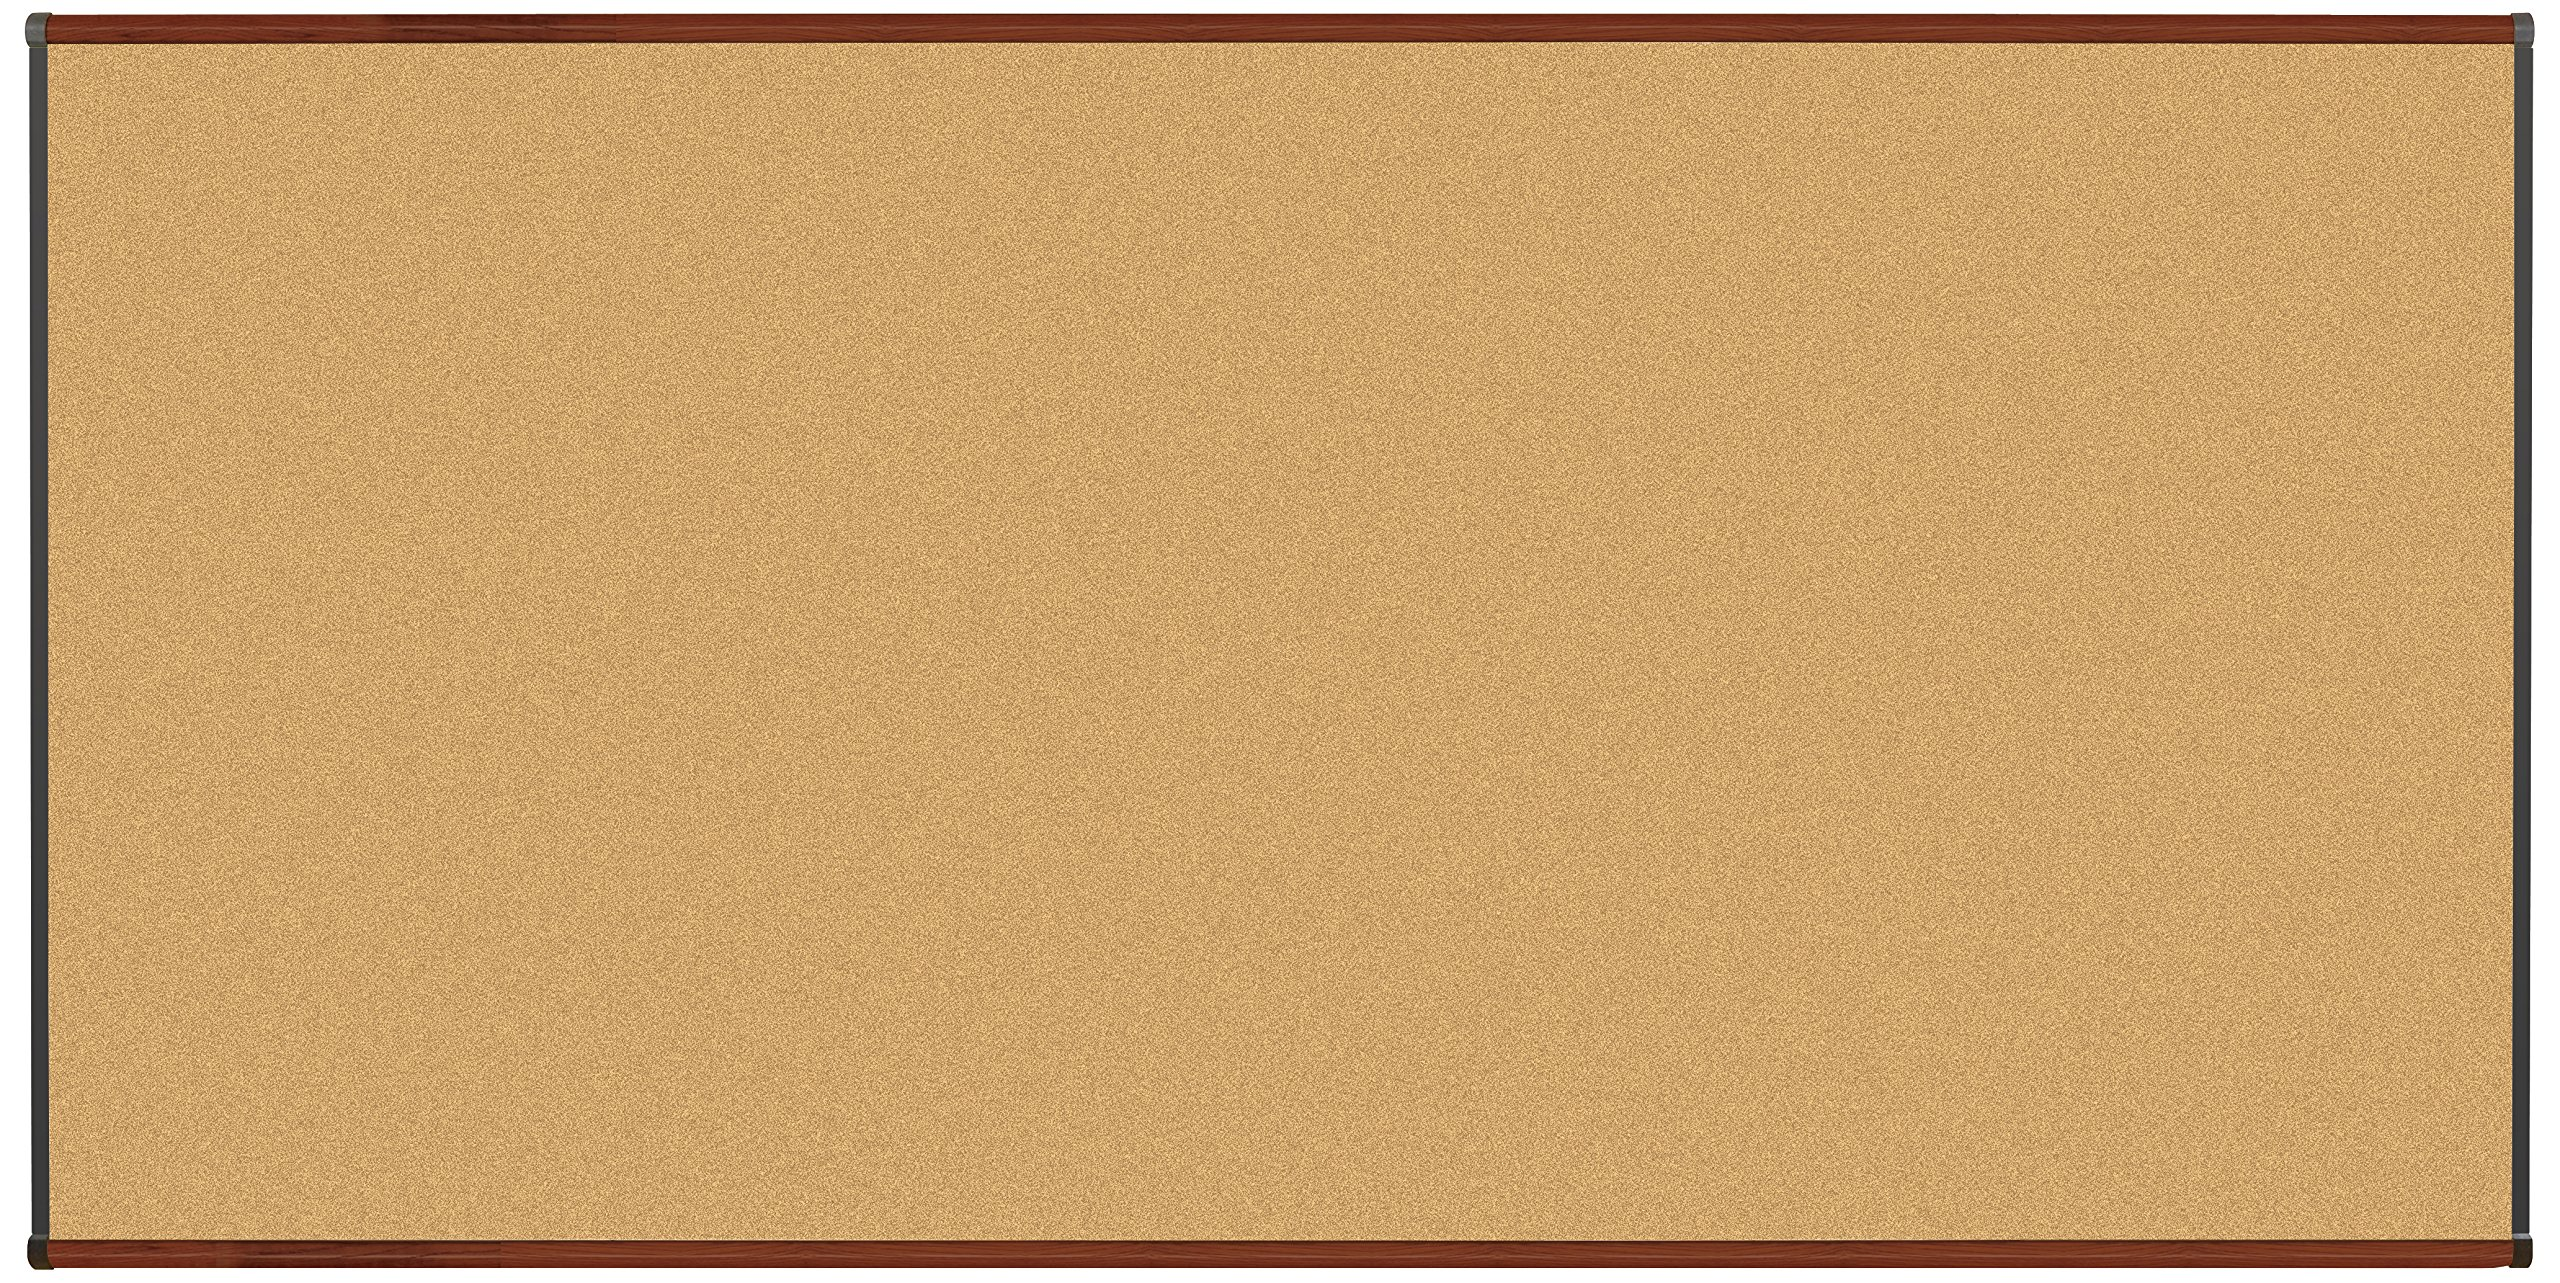 Best-Rite Origin Trim-Mahogany/Natural Cork Bulletin Board, 4 x 8 Feet (301OH-03)